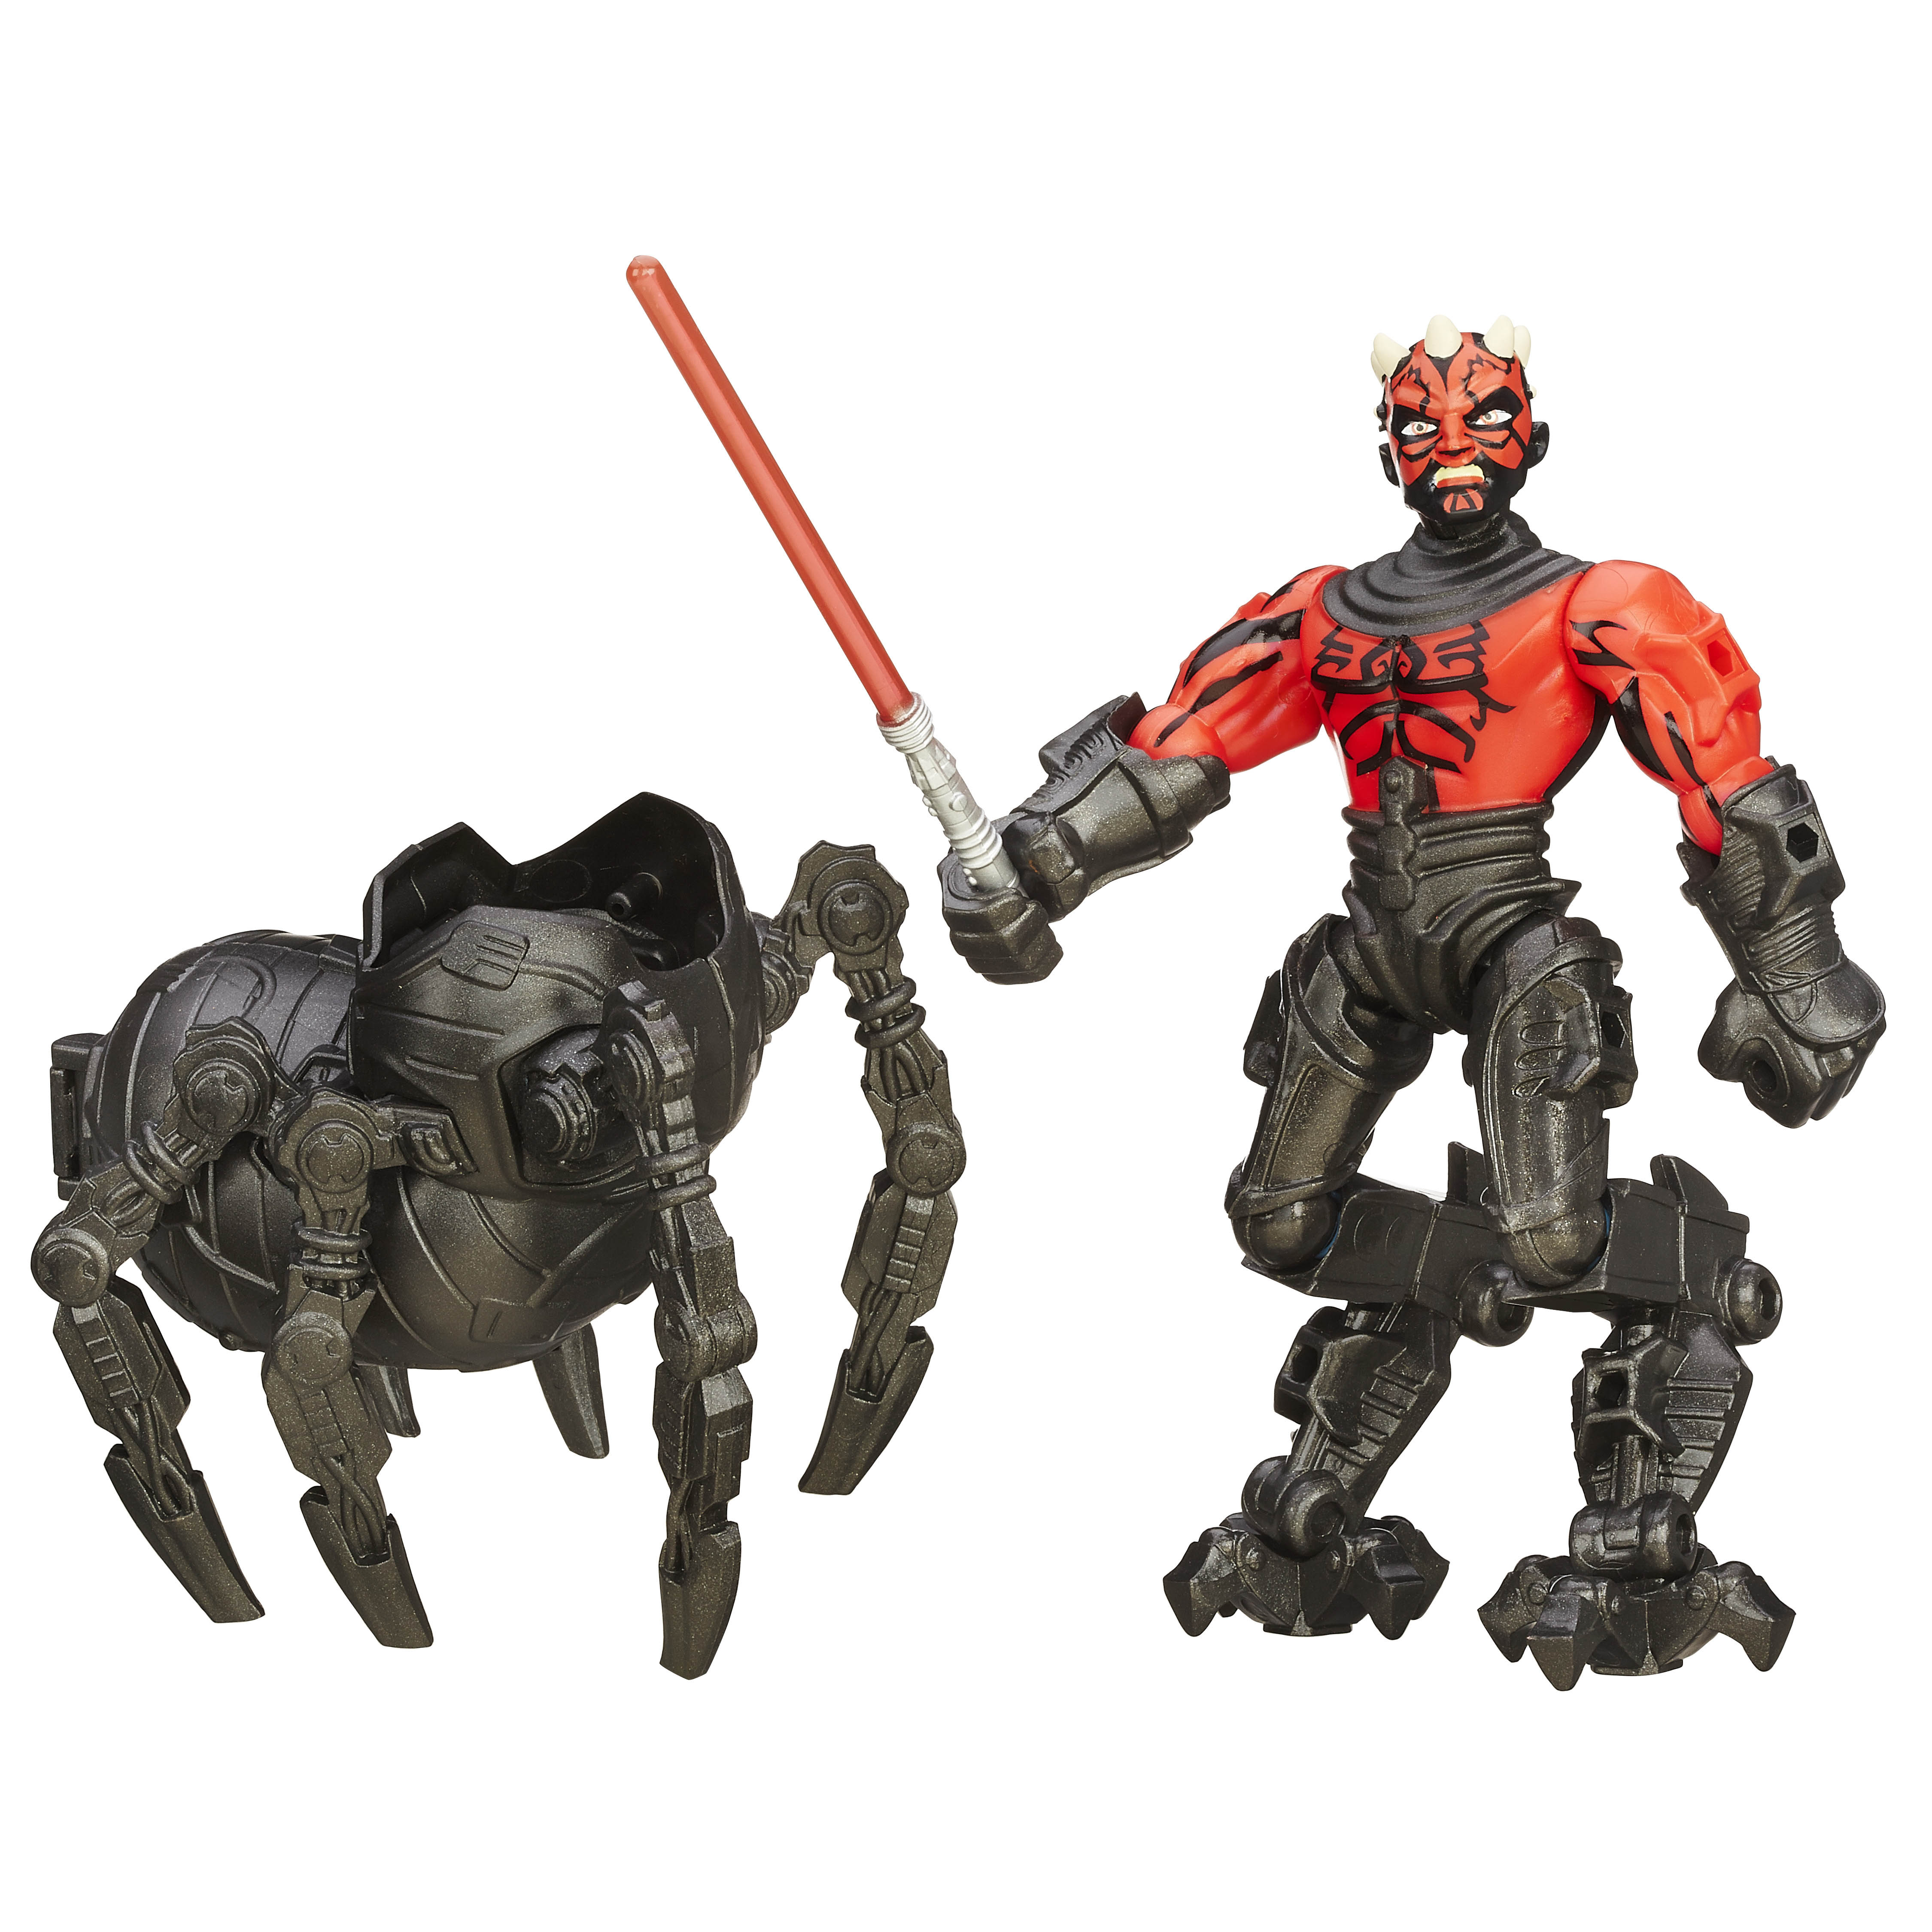 Star Wars Darth Maul Action Figure 18